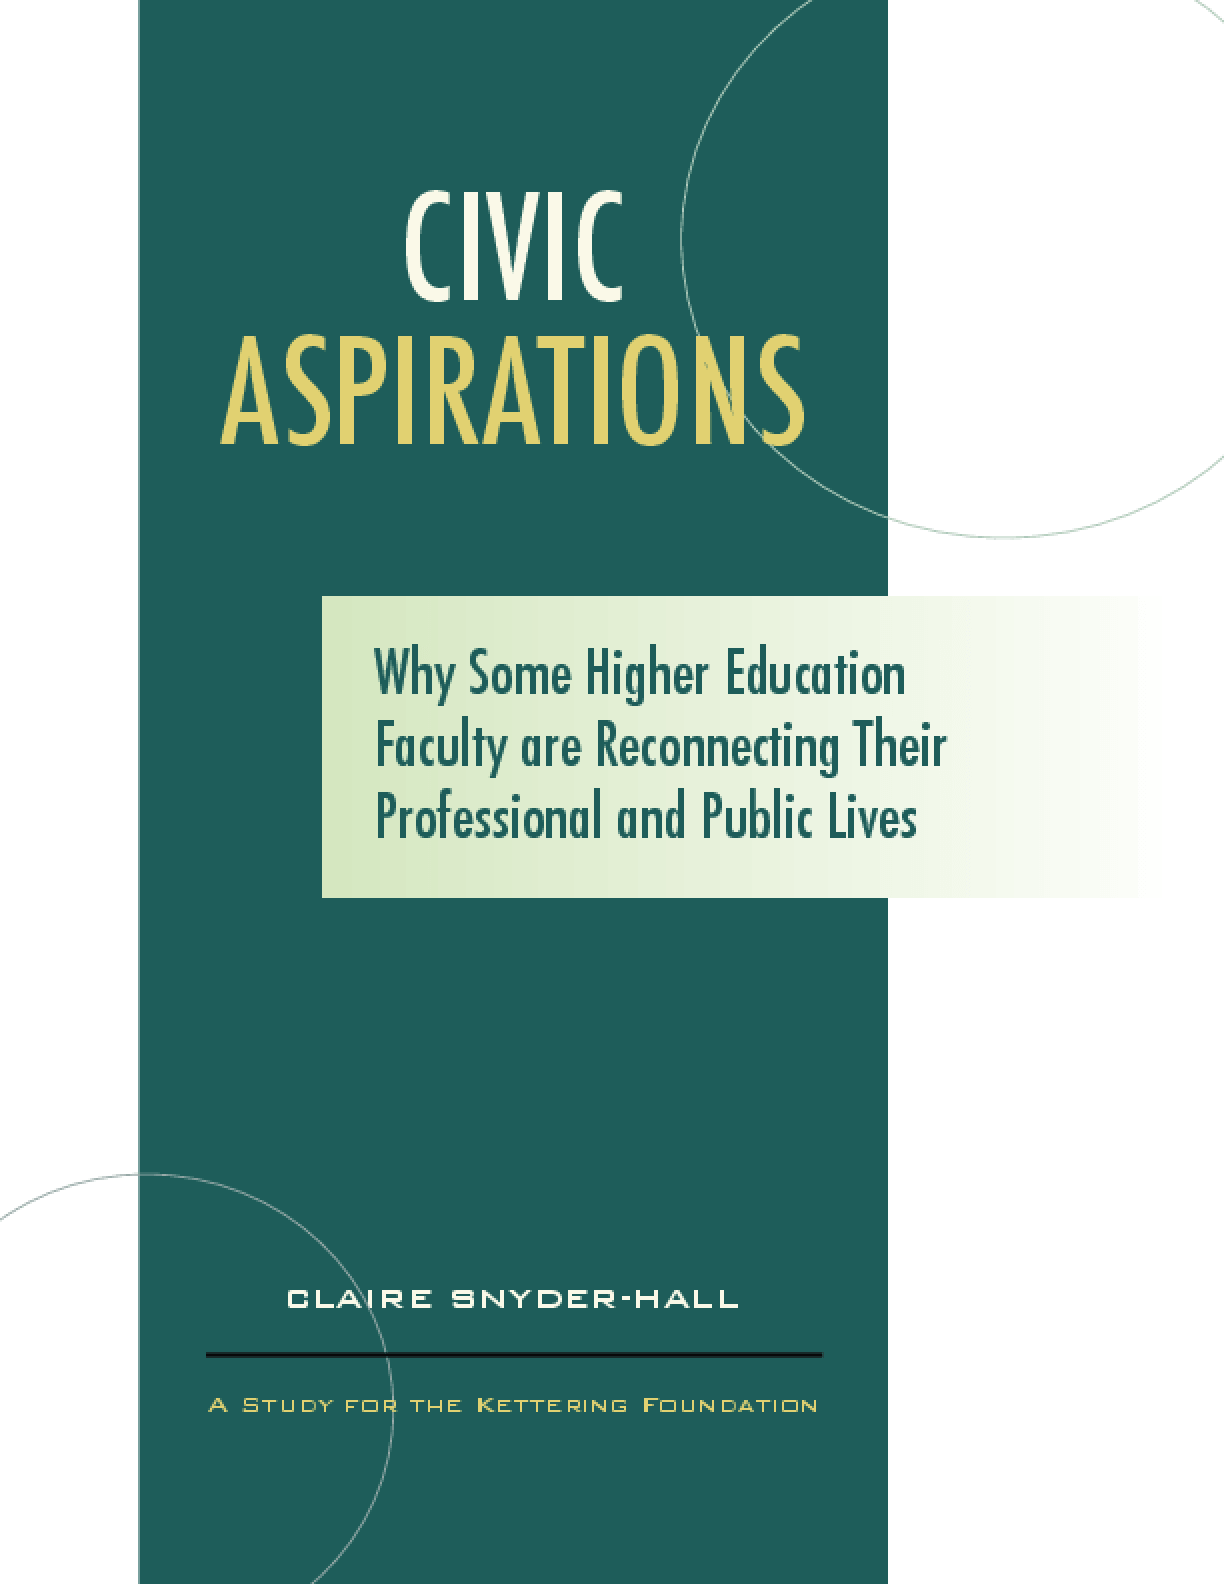 Civic Aspirations: Why Some Higher Education Faculty are Reconnecting Their Professional and Public Lives